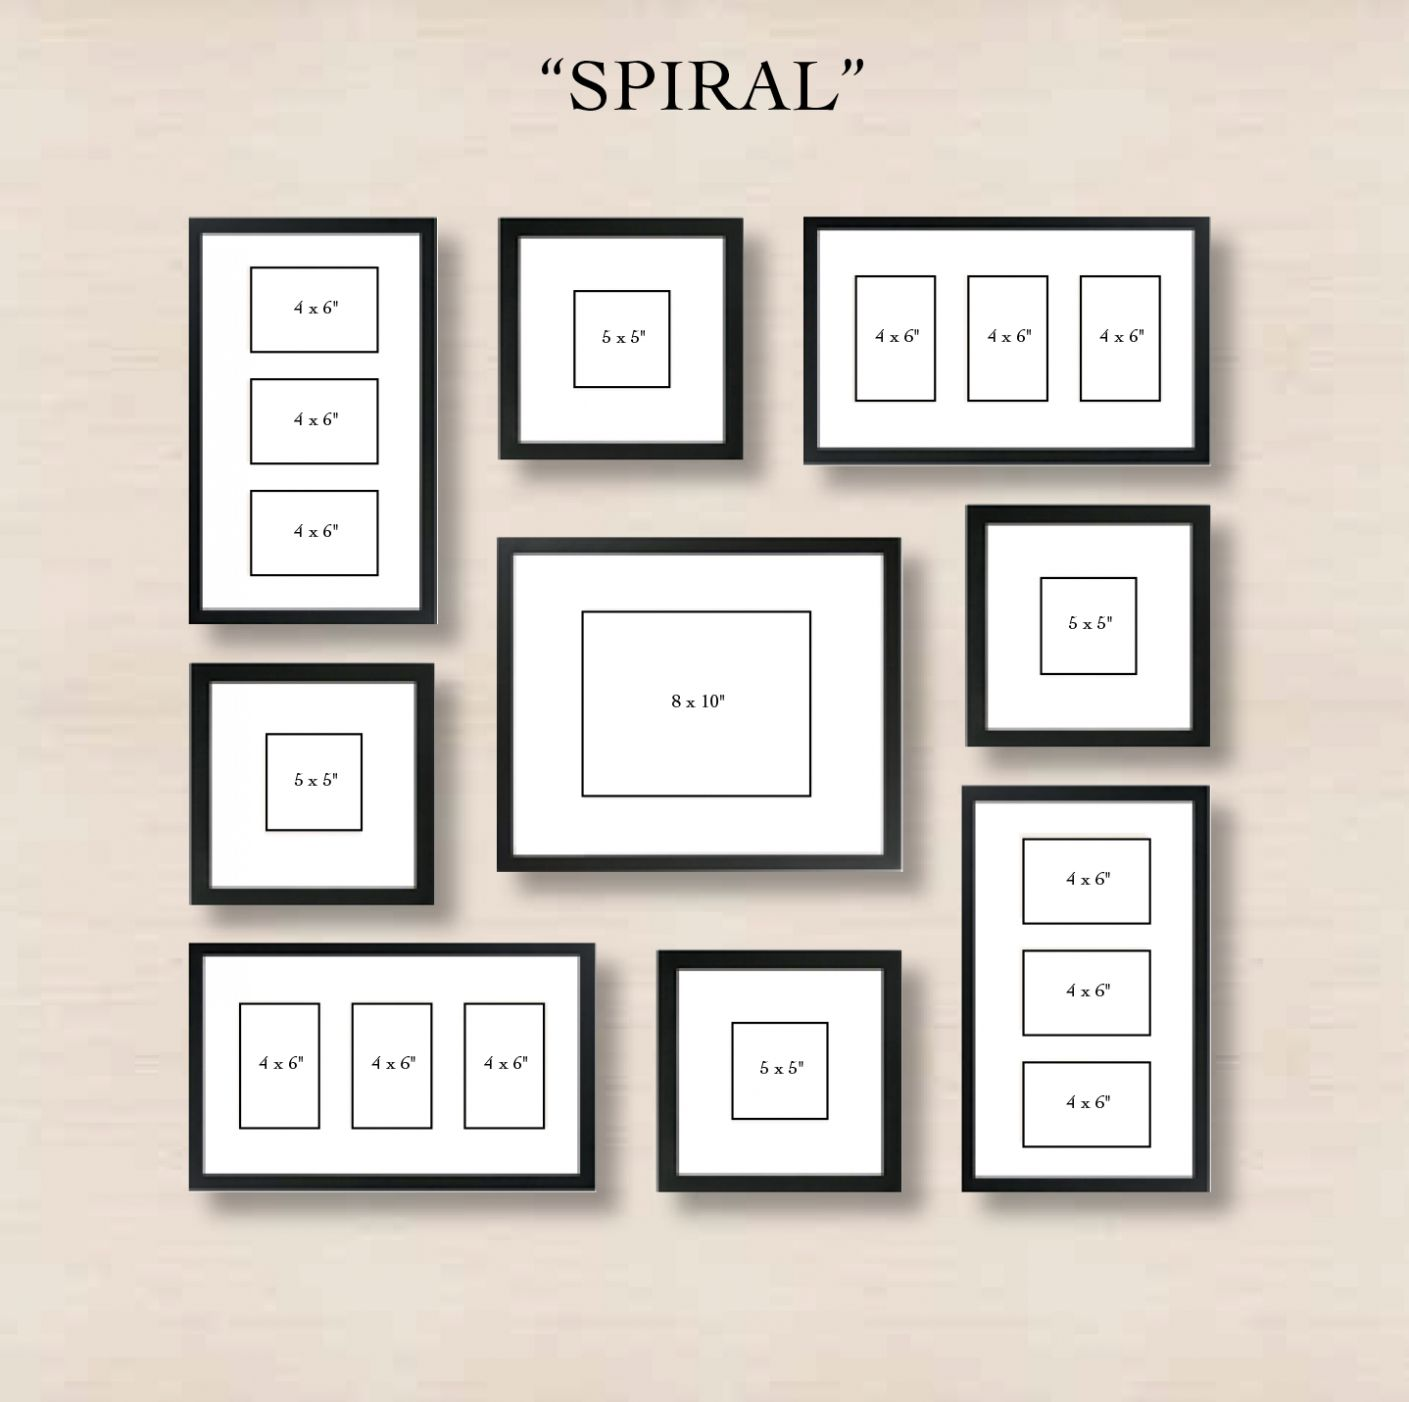 Spiral Gallery Wall Layout Tip Start With Placing The Center In 8x10 Picture Frame Arrangements Gallery Wall Layout Gallery Wall Photo Wall Gallery